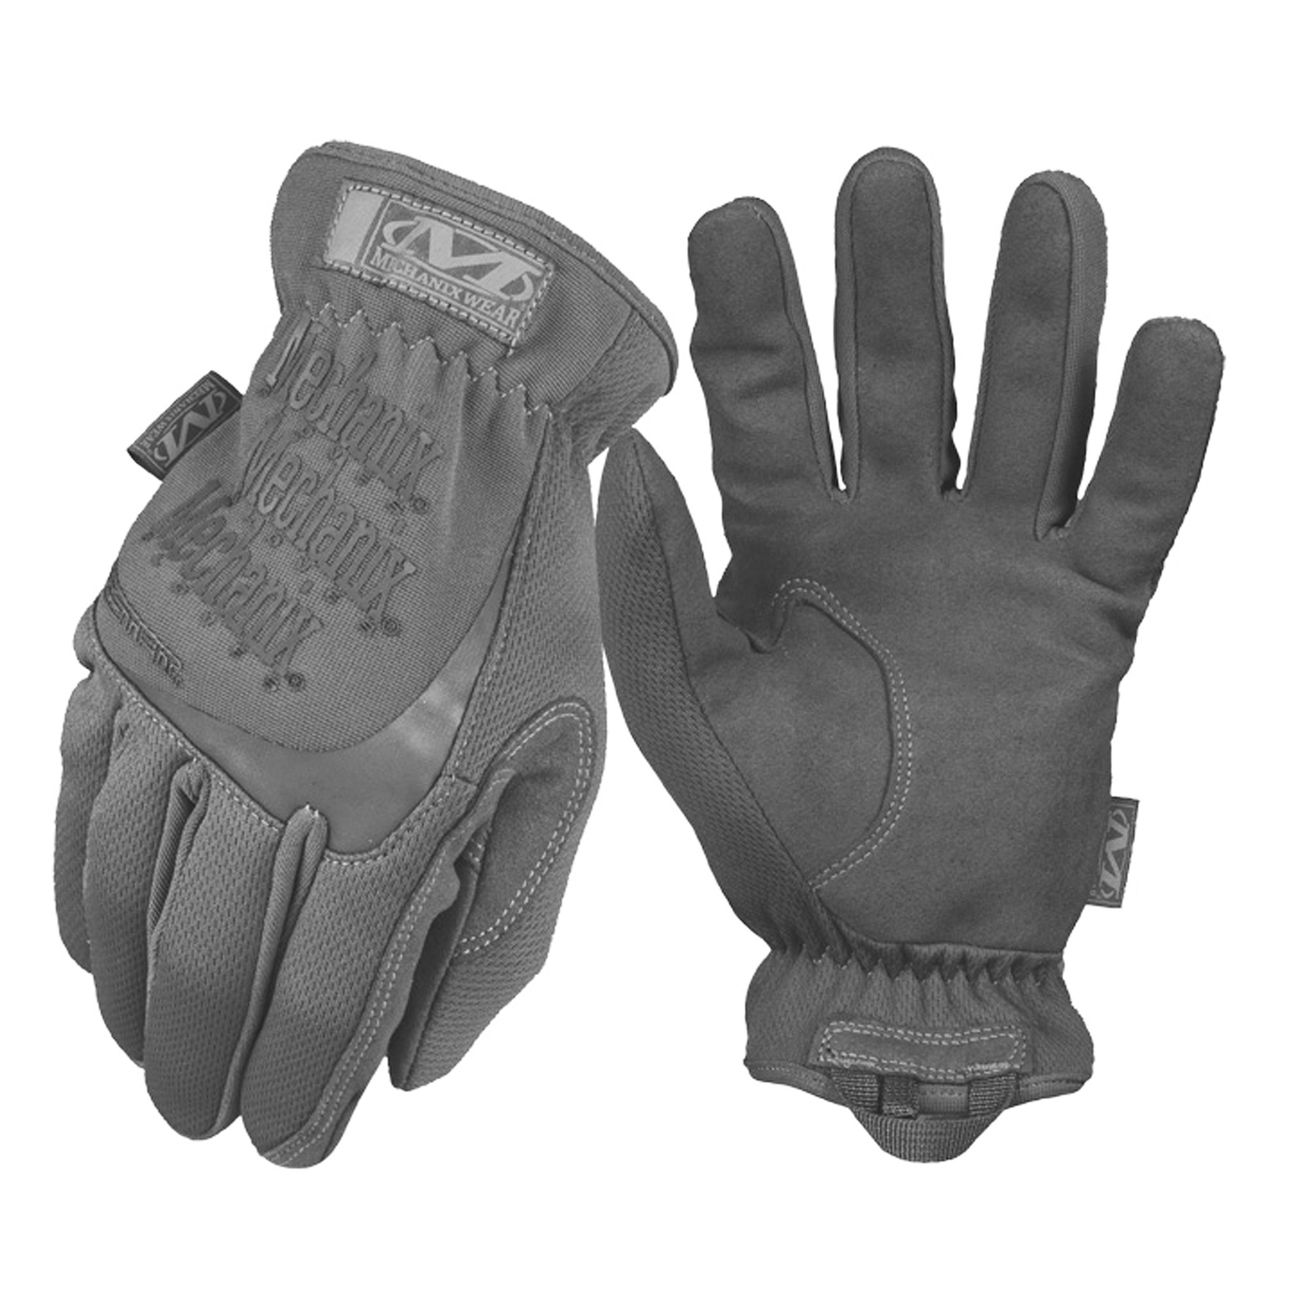 Mechanix Wear FastFit Glove Handschuhe grau 2